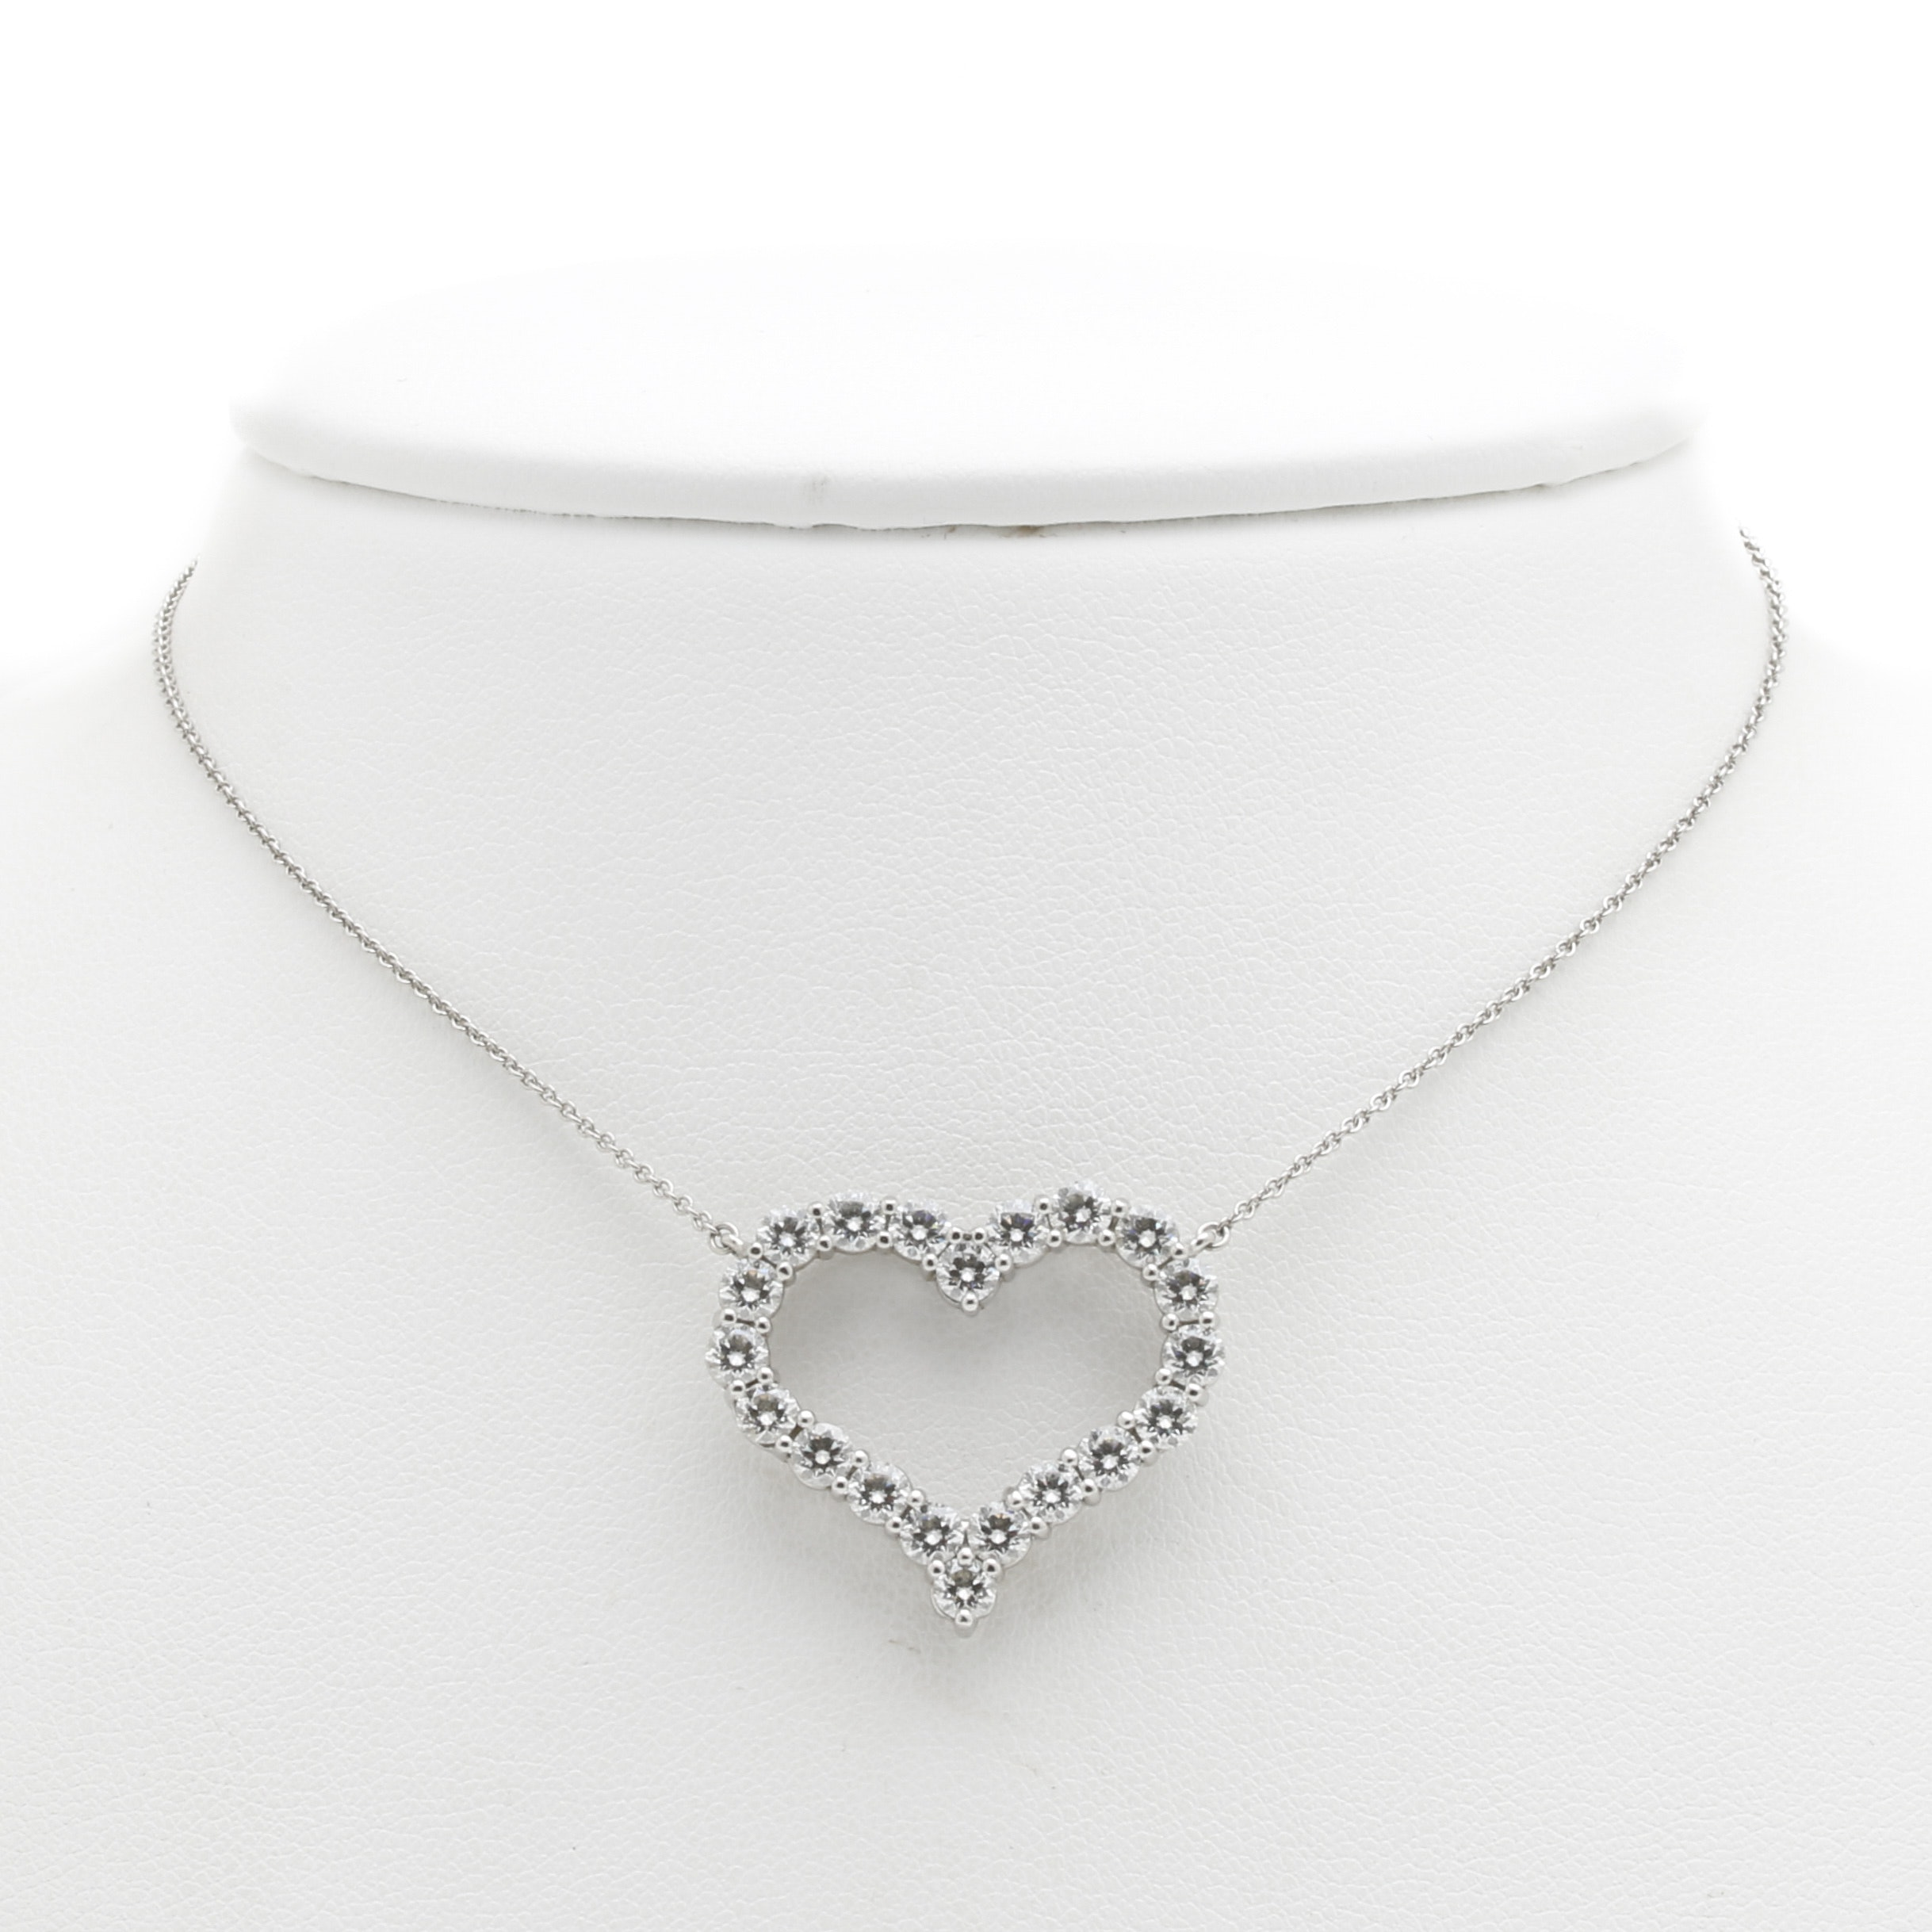 Tiffany & Co. Platinum Necklace with 2.00 CTW Diamond Heart Shape Pendant